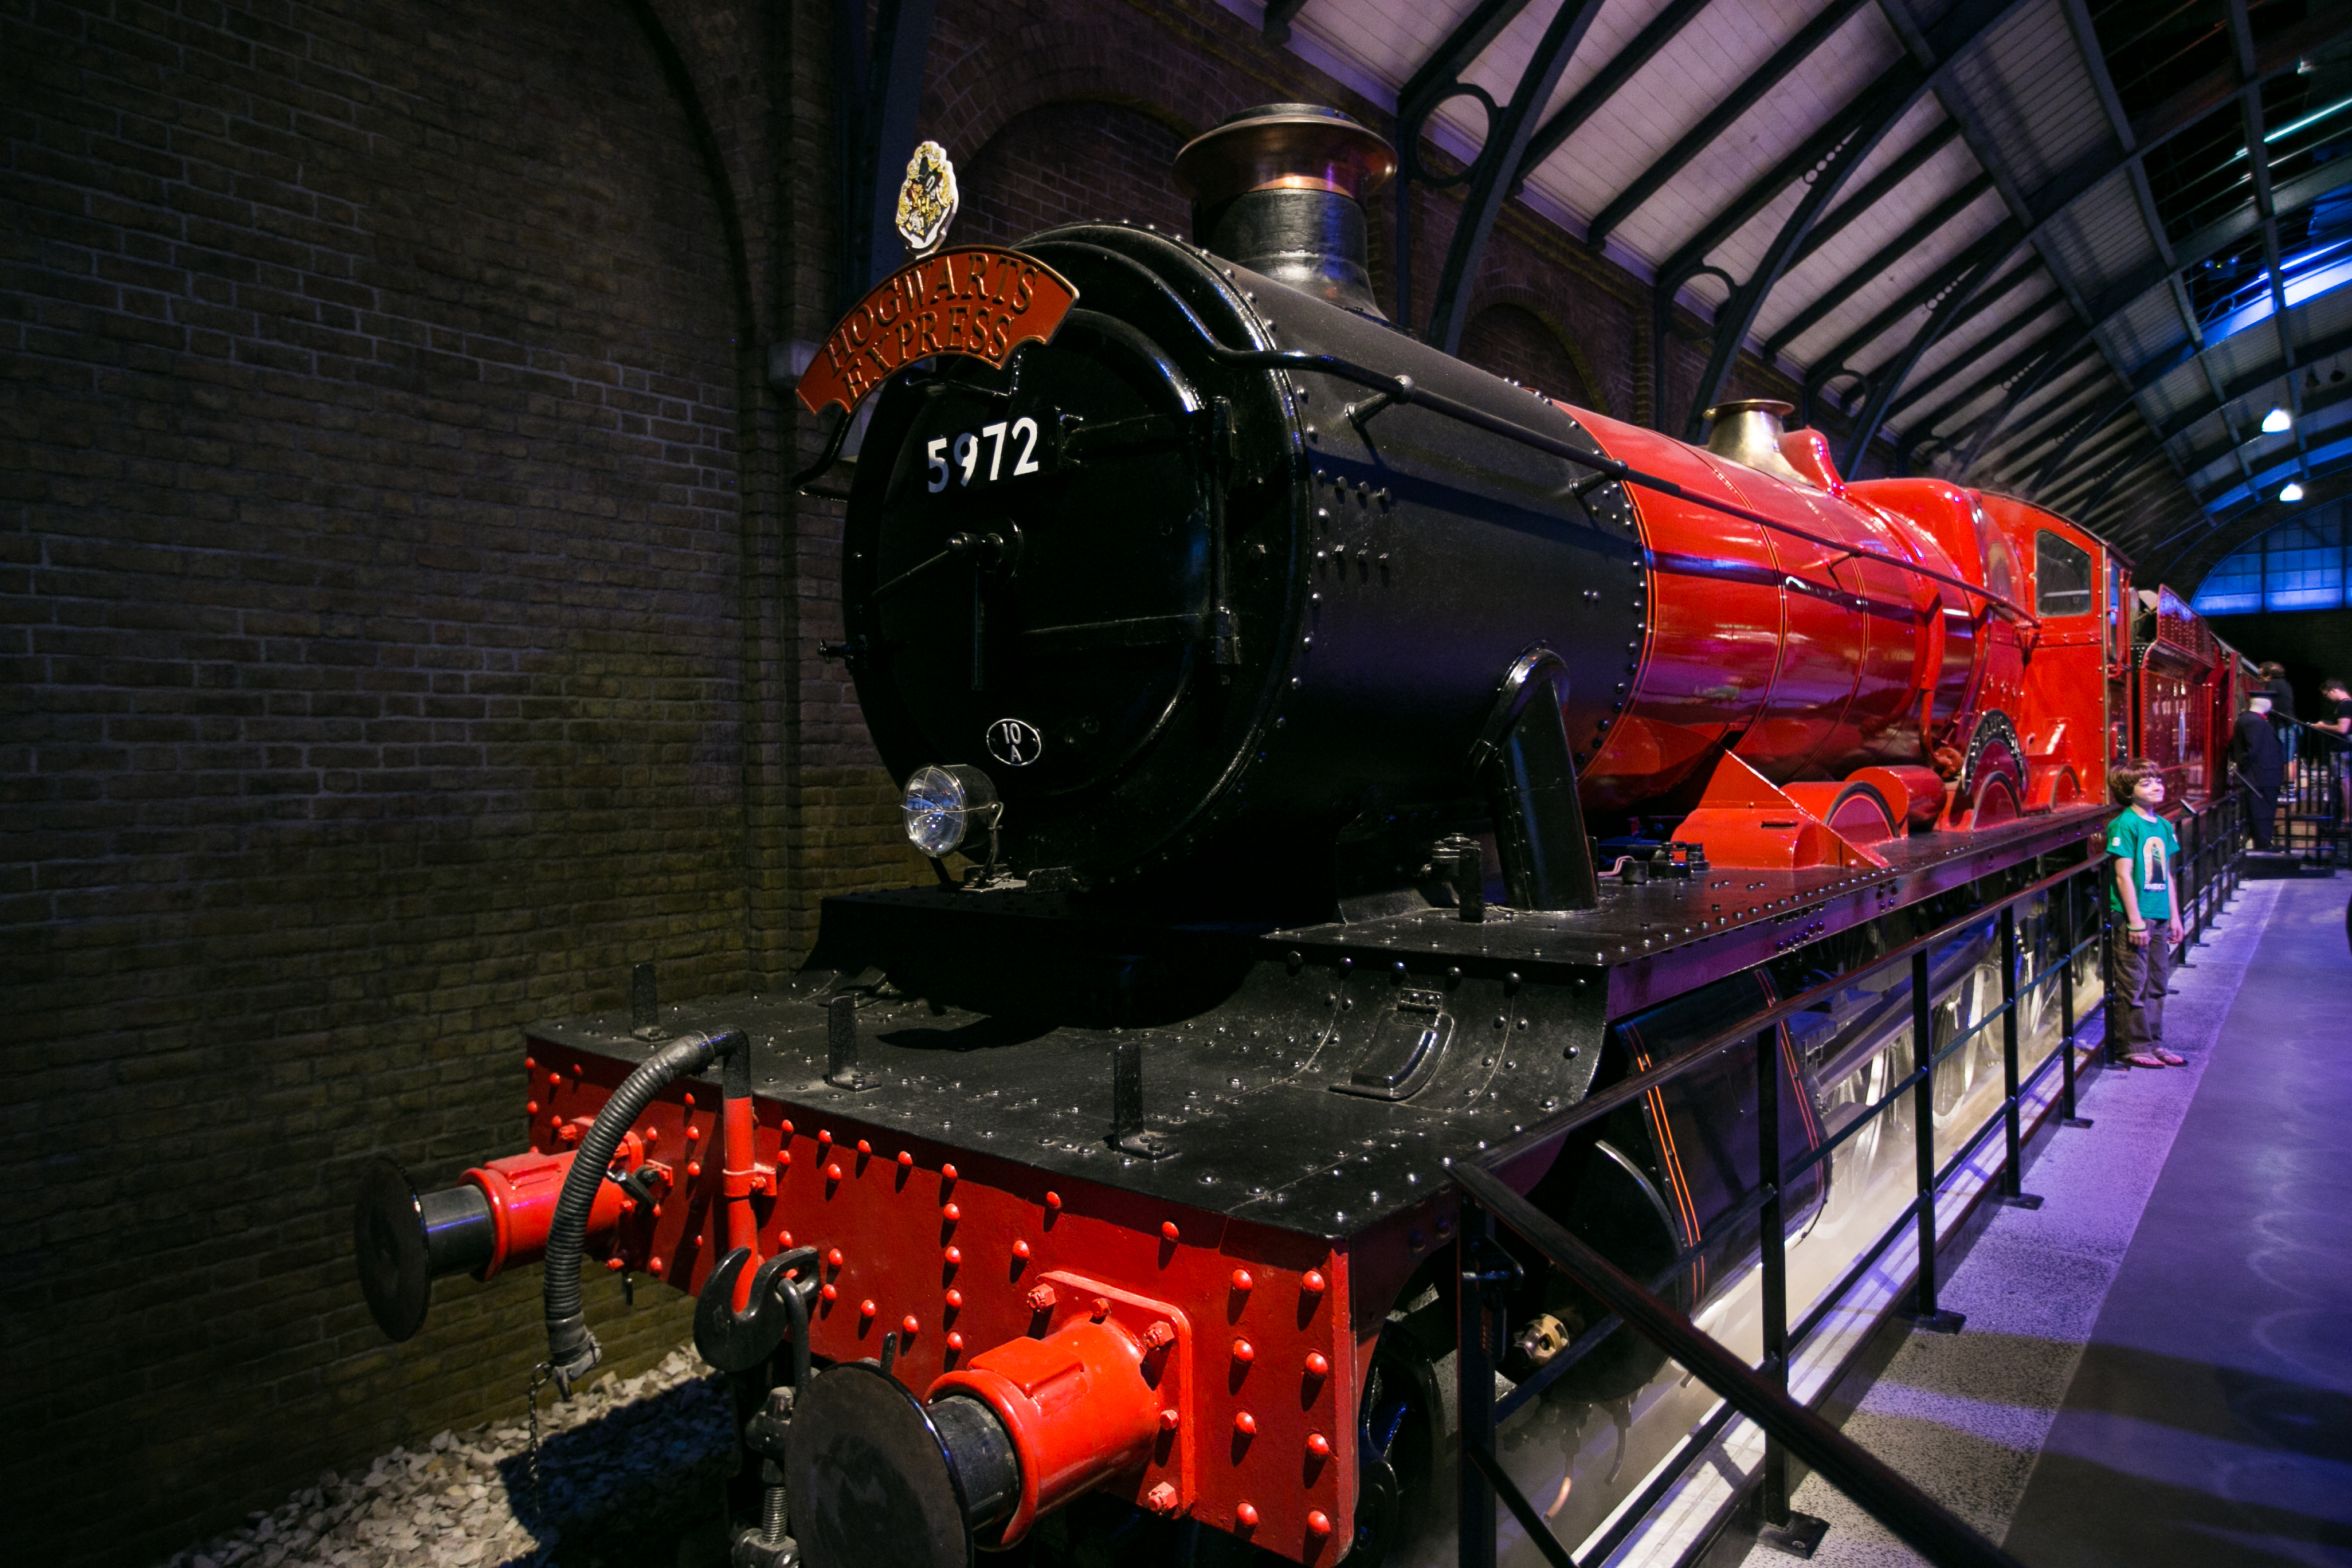 harry-potter-studio-tour-hogwarts-express